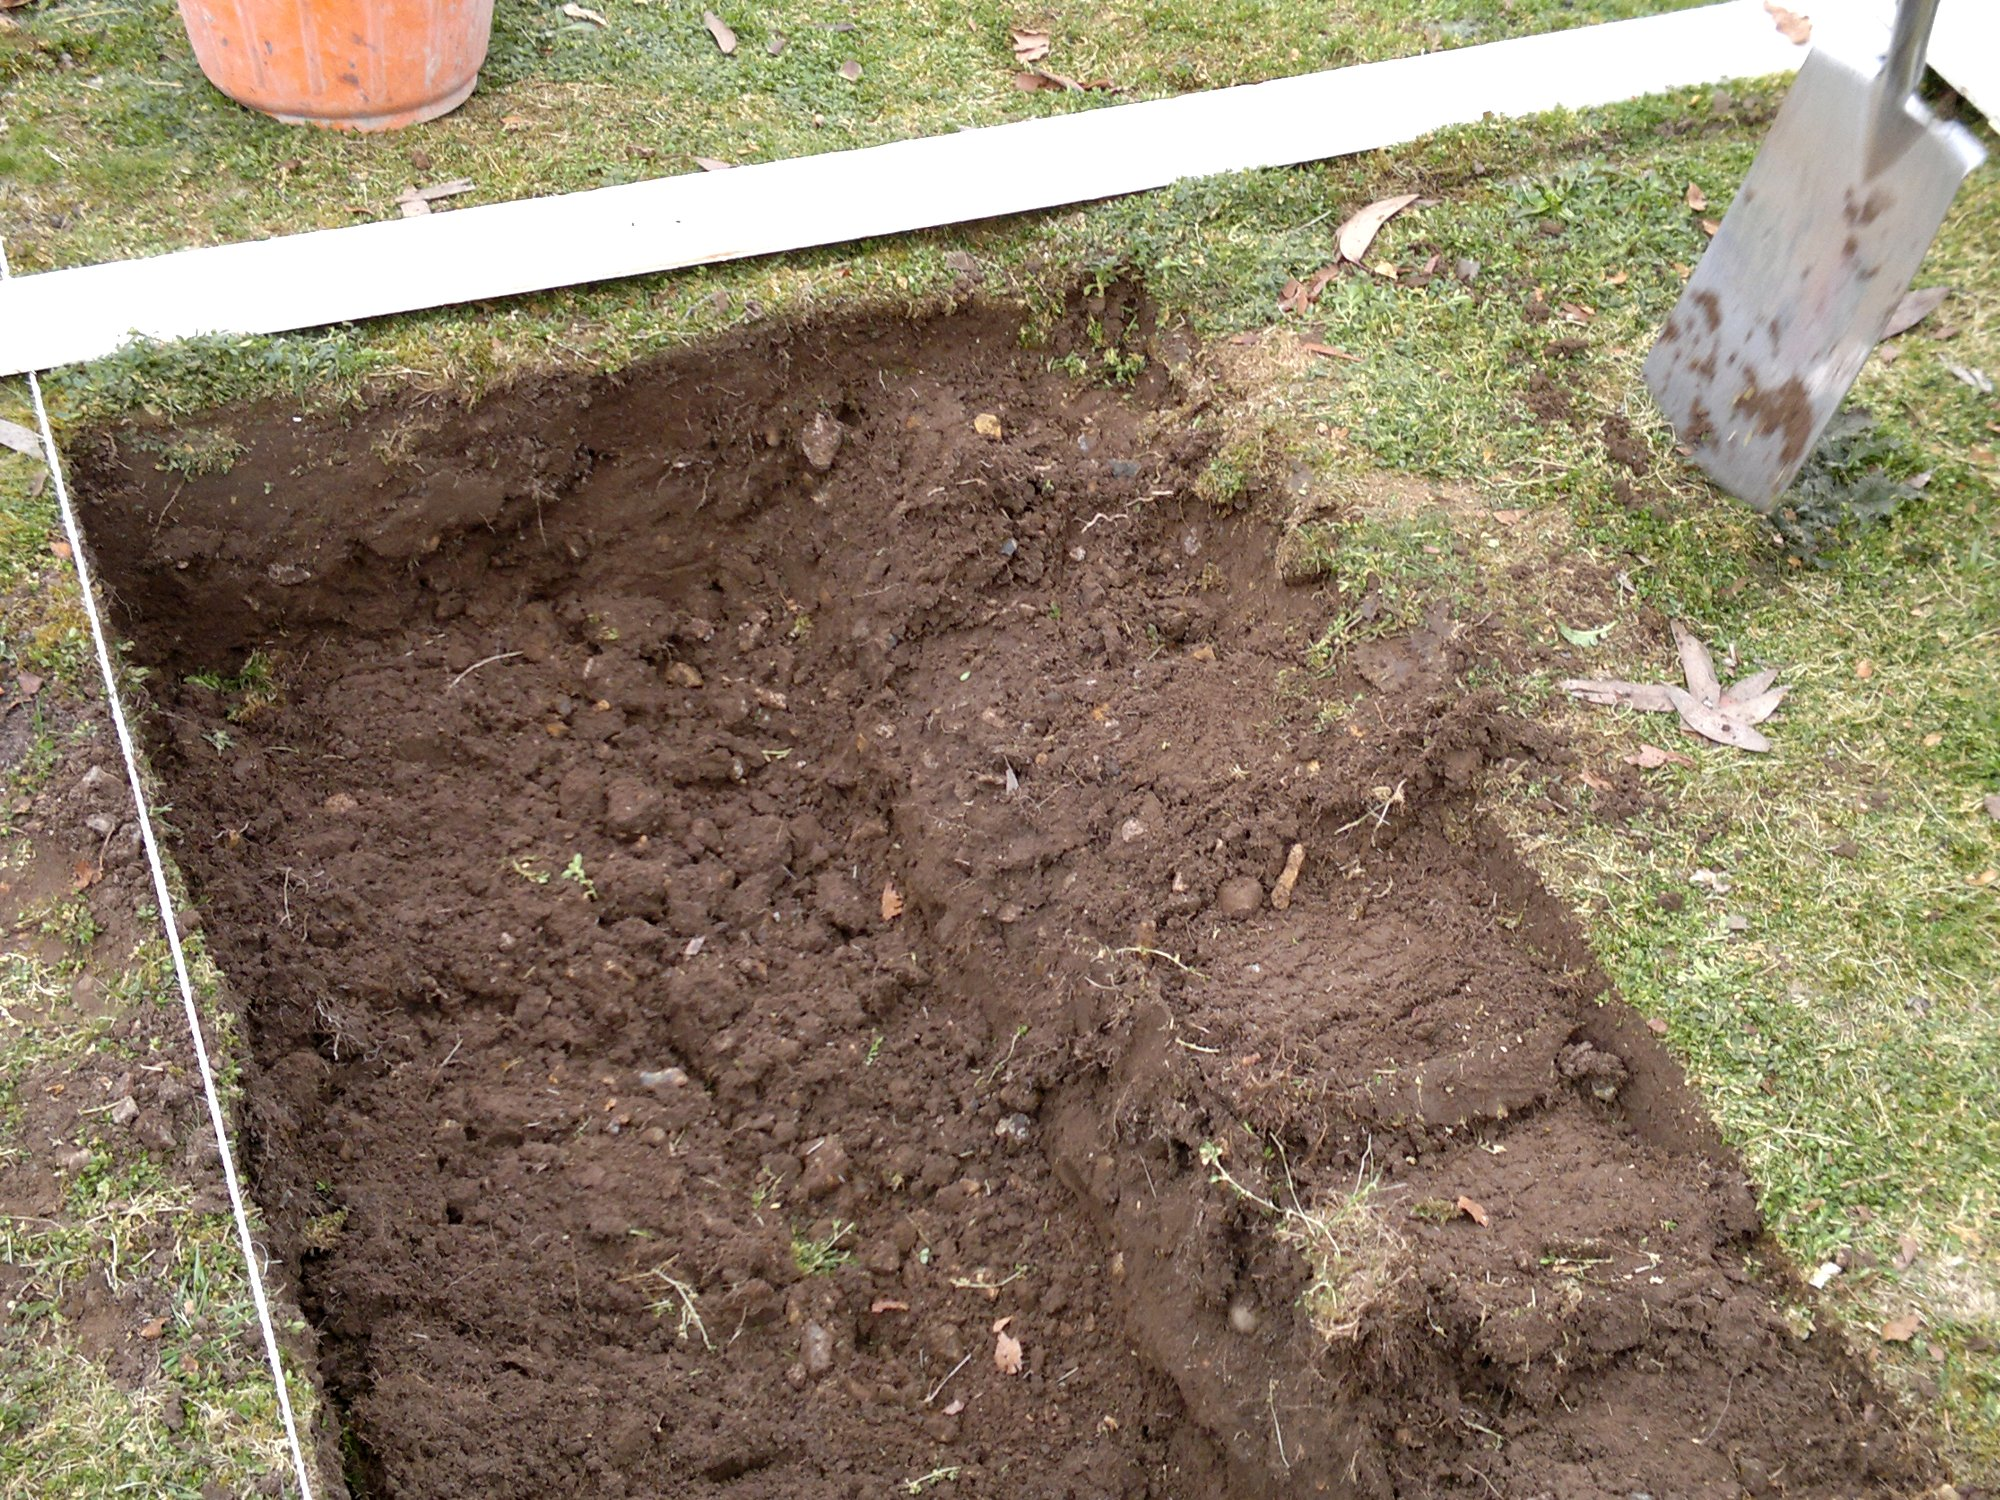 Trenching part 5: cutting the turf from the next row, placing upside down in the previous trench